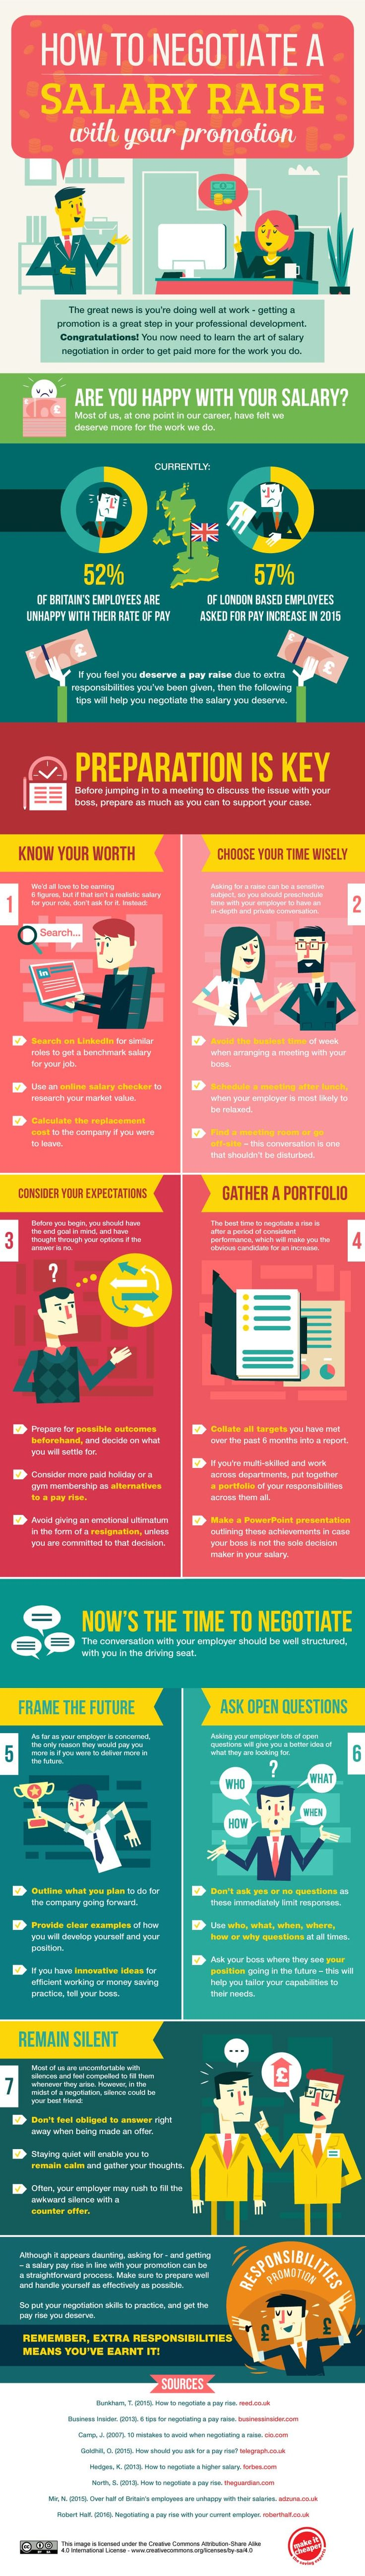 How To Negotiate a Salary Rise With Your Promotion #Infographic #Career